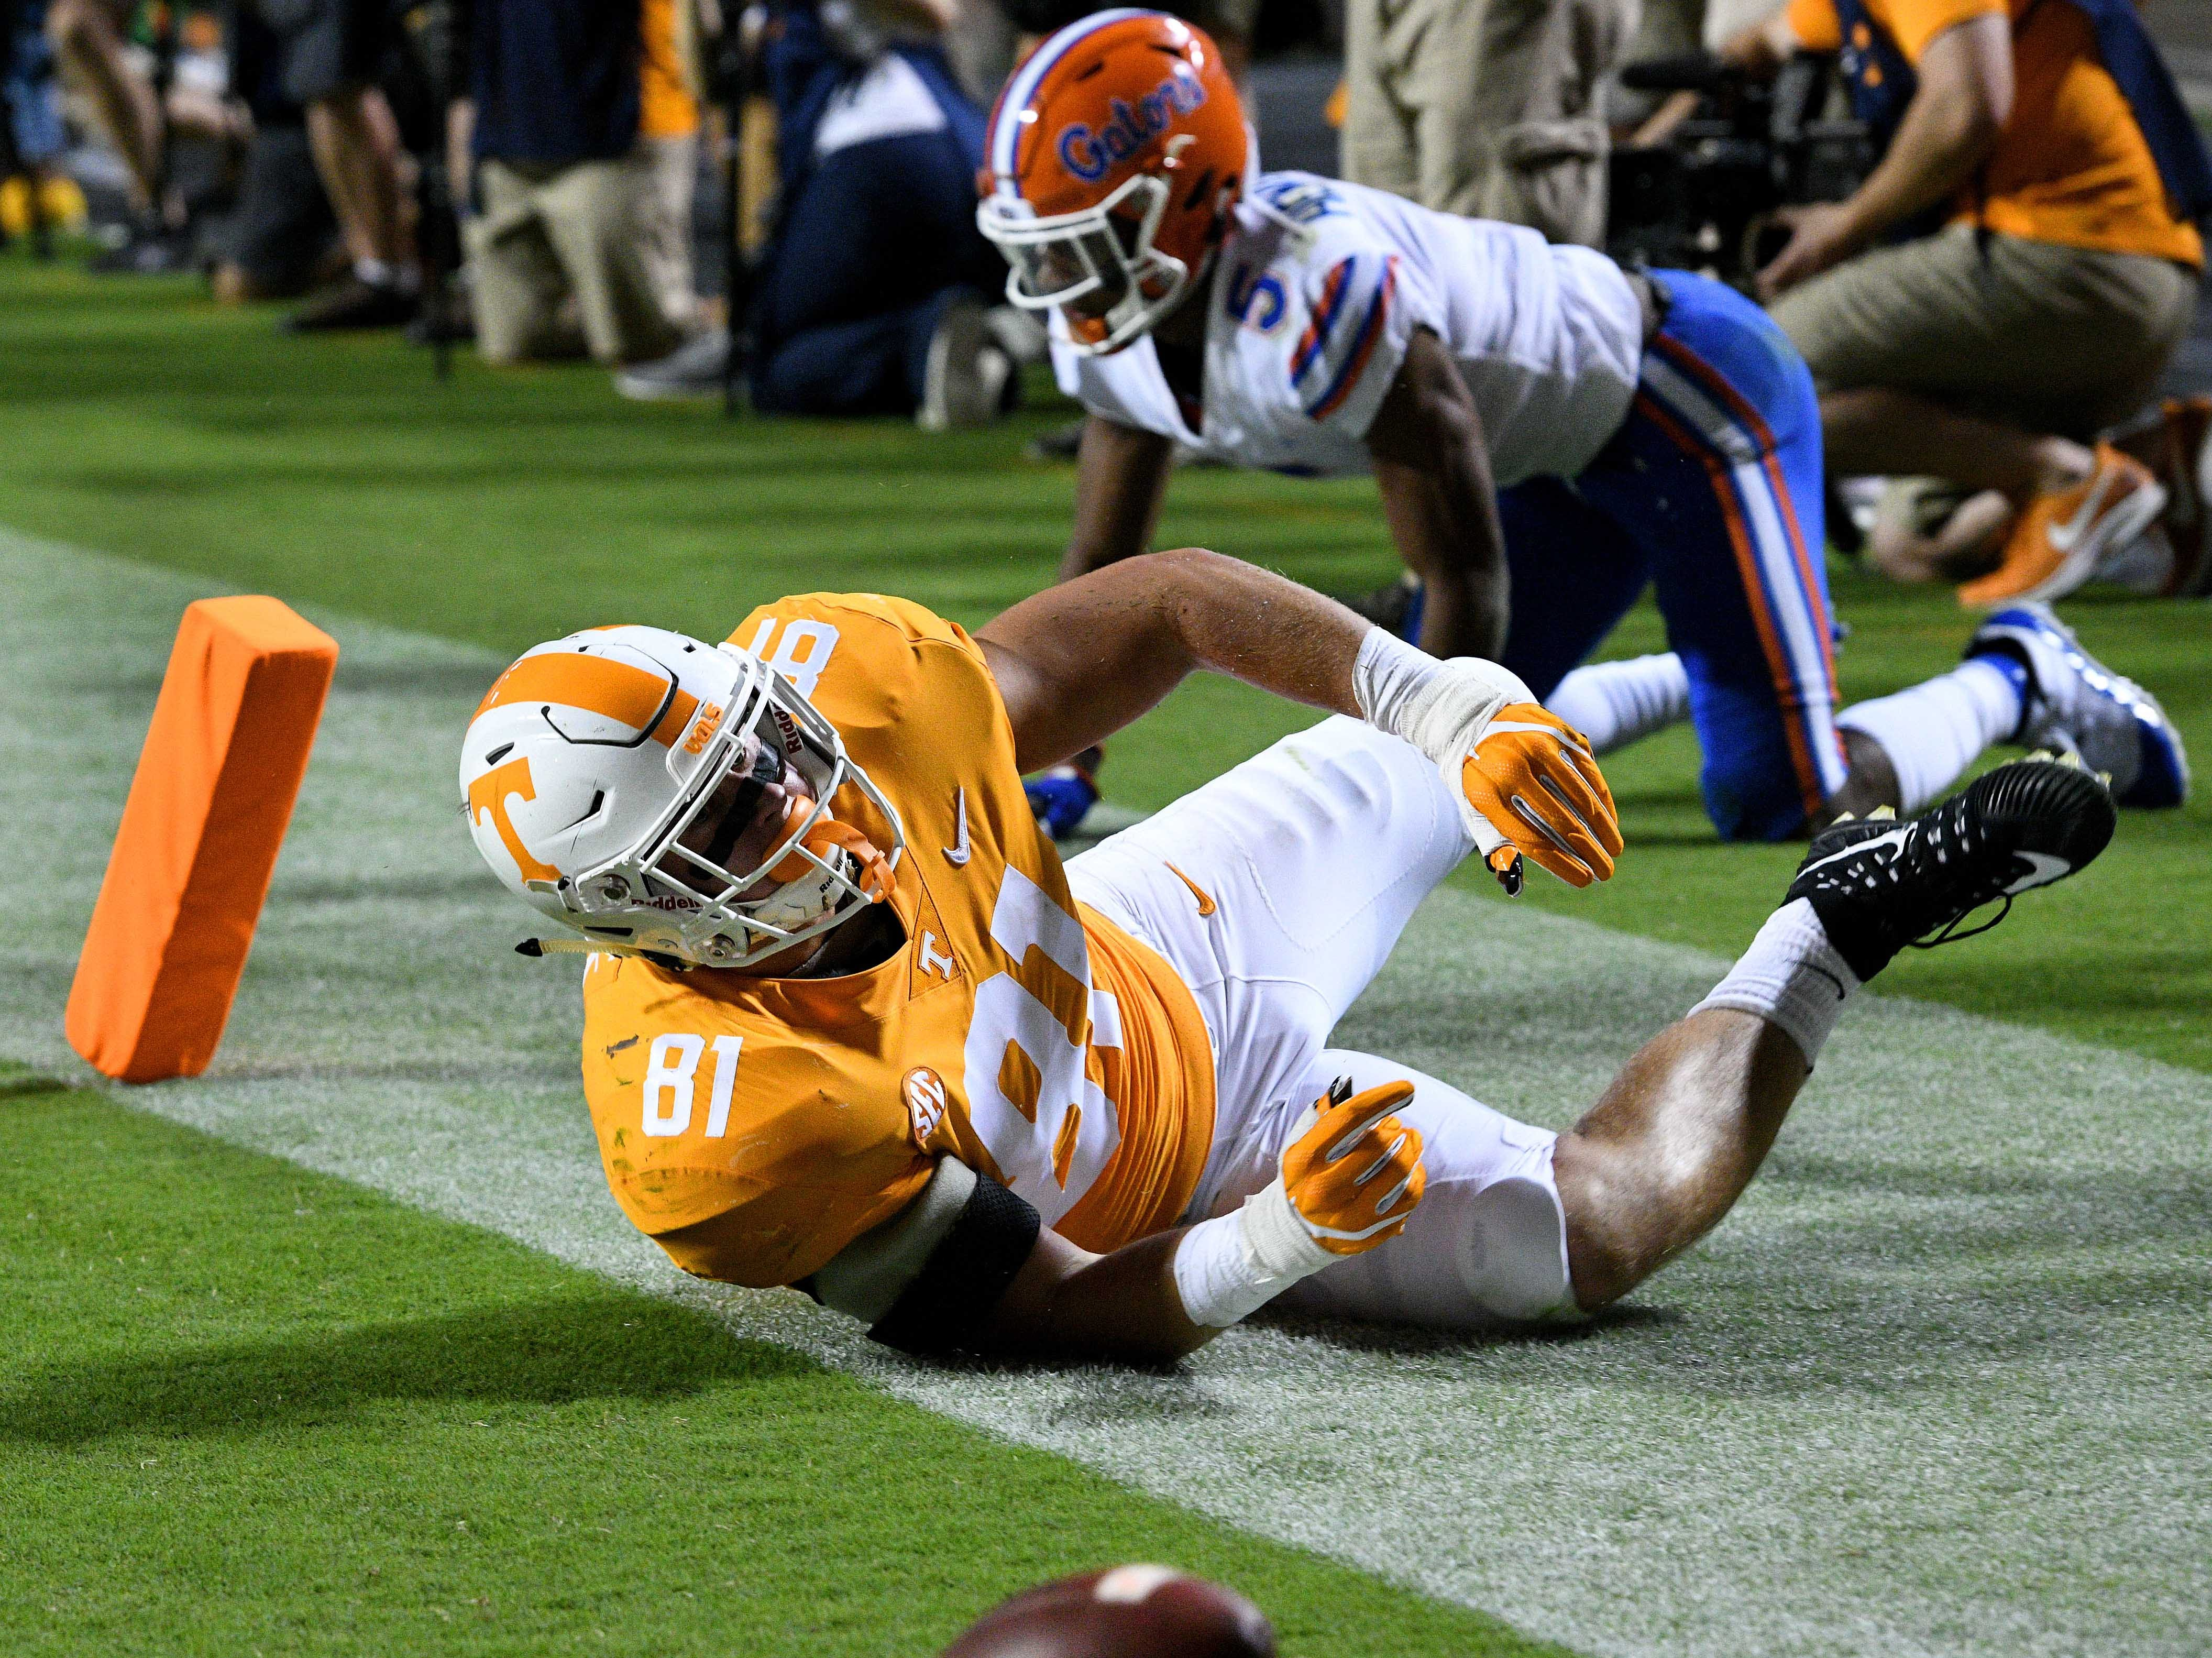 Tennessee tight end Austin Pope (81) fumbles the ball for a safety during first half action against Florida in Neyland Stadium Saturday, September 22, 2018 in Knoxville, Tenn.